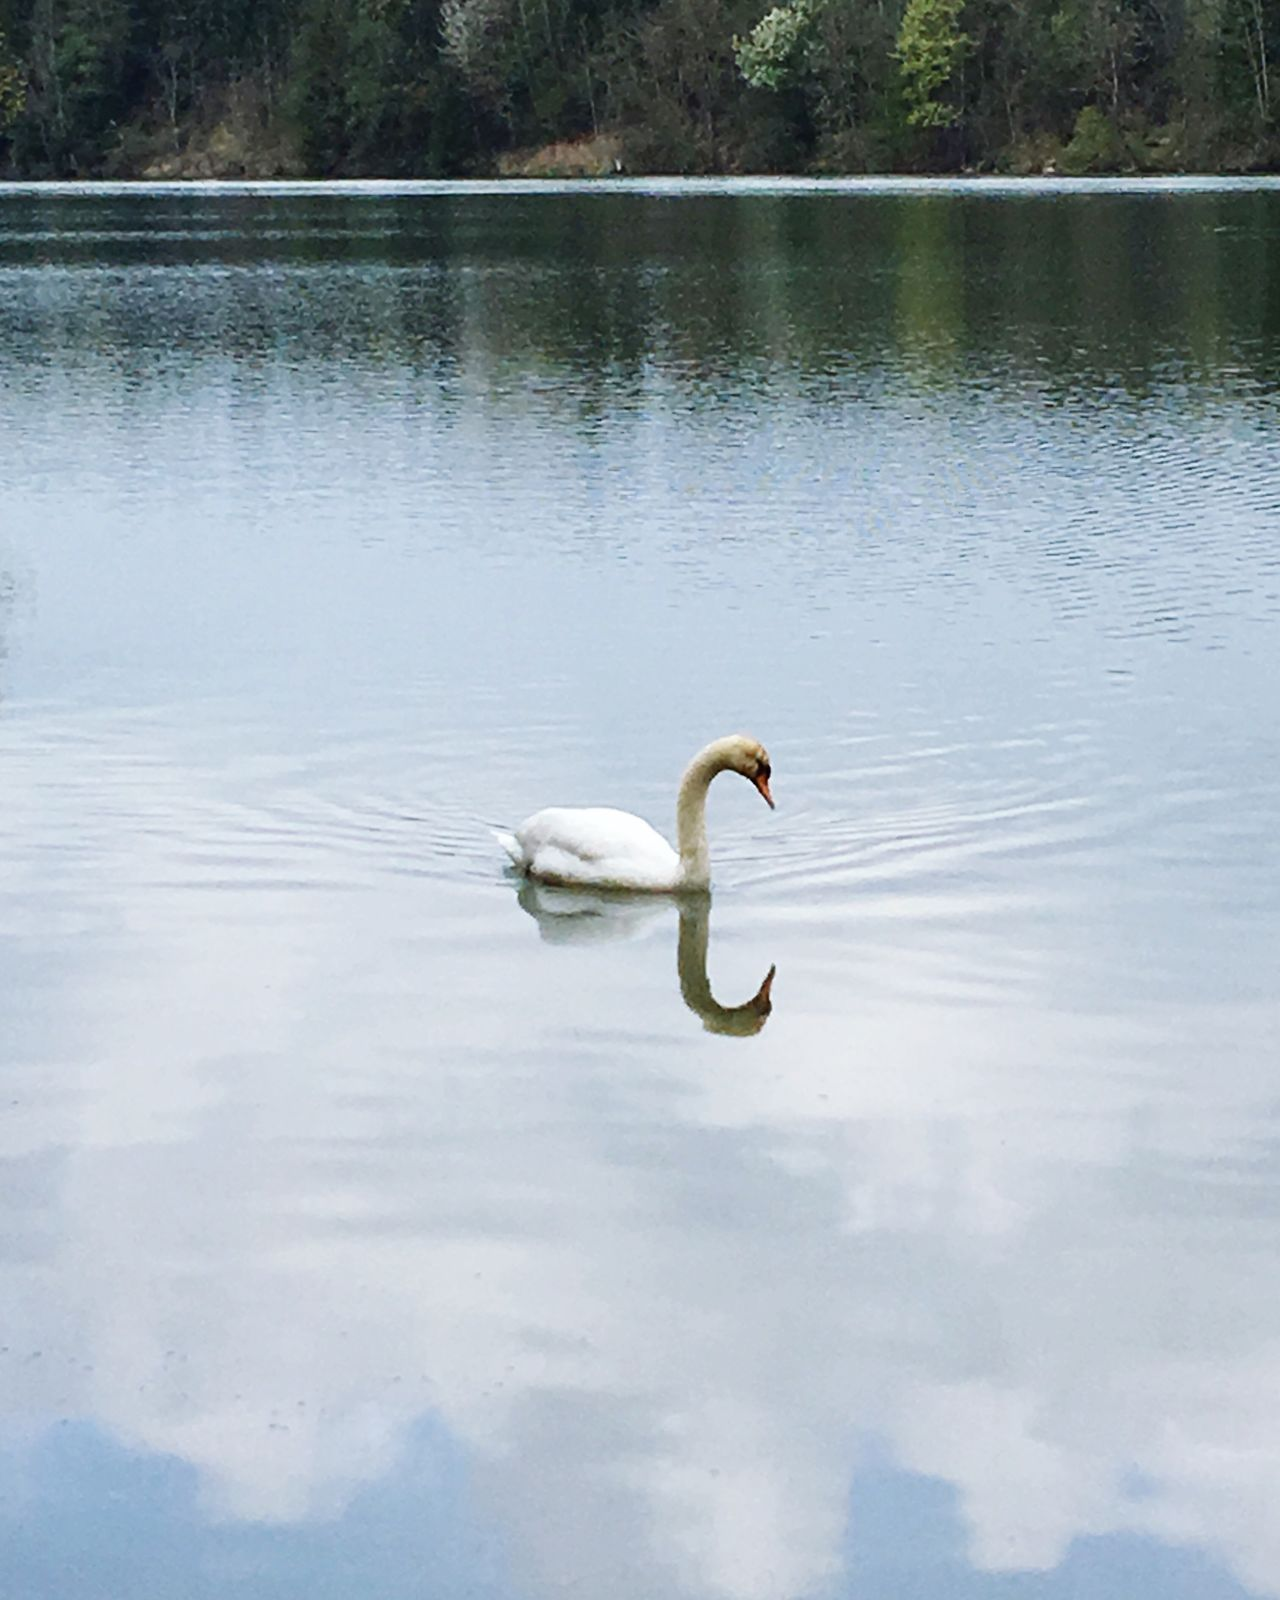 Animals In The Wild Swan Lake One Animal Animal Themes Bird Water Reflection Nature Animal Wildlife No People Day Water Bird Swan Lake Swan Cold Temperature Bavaria Sky Beauty In Nature Reflection Outdoors Swimming Beauty In Nature